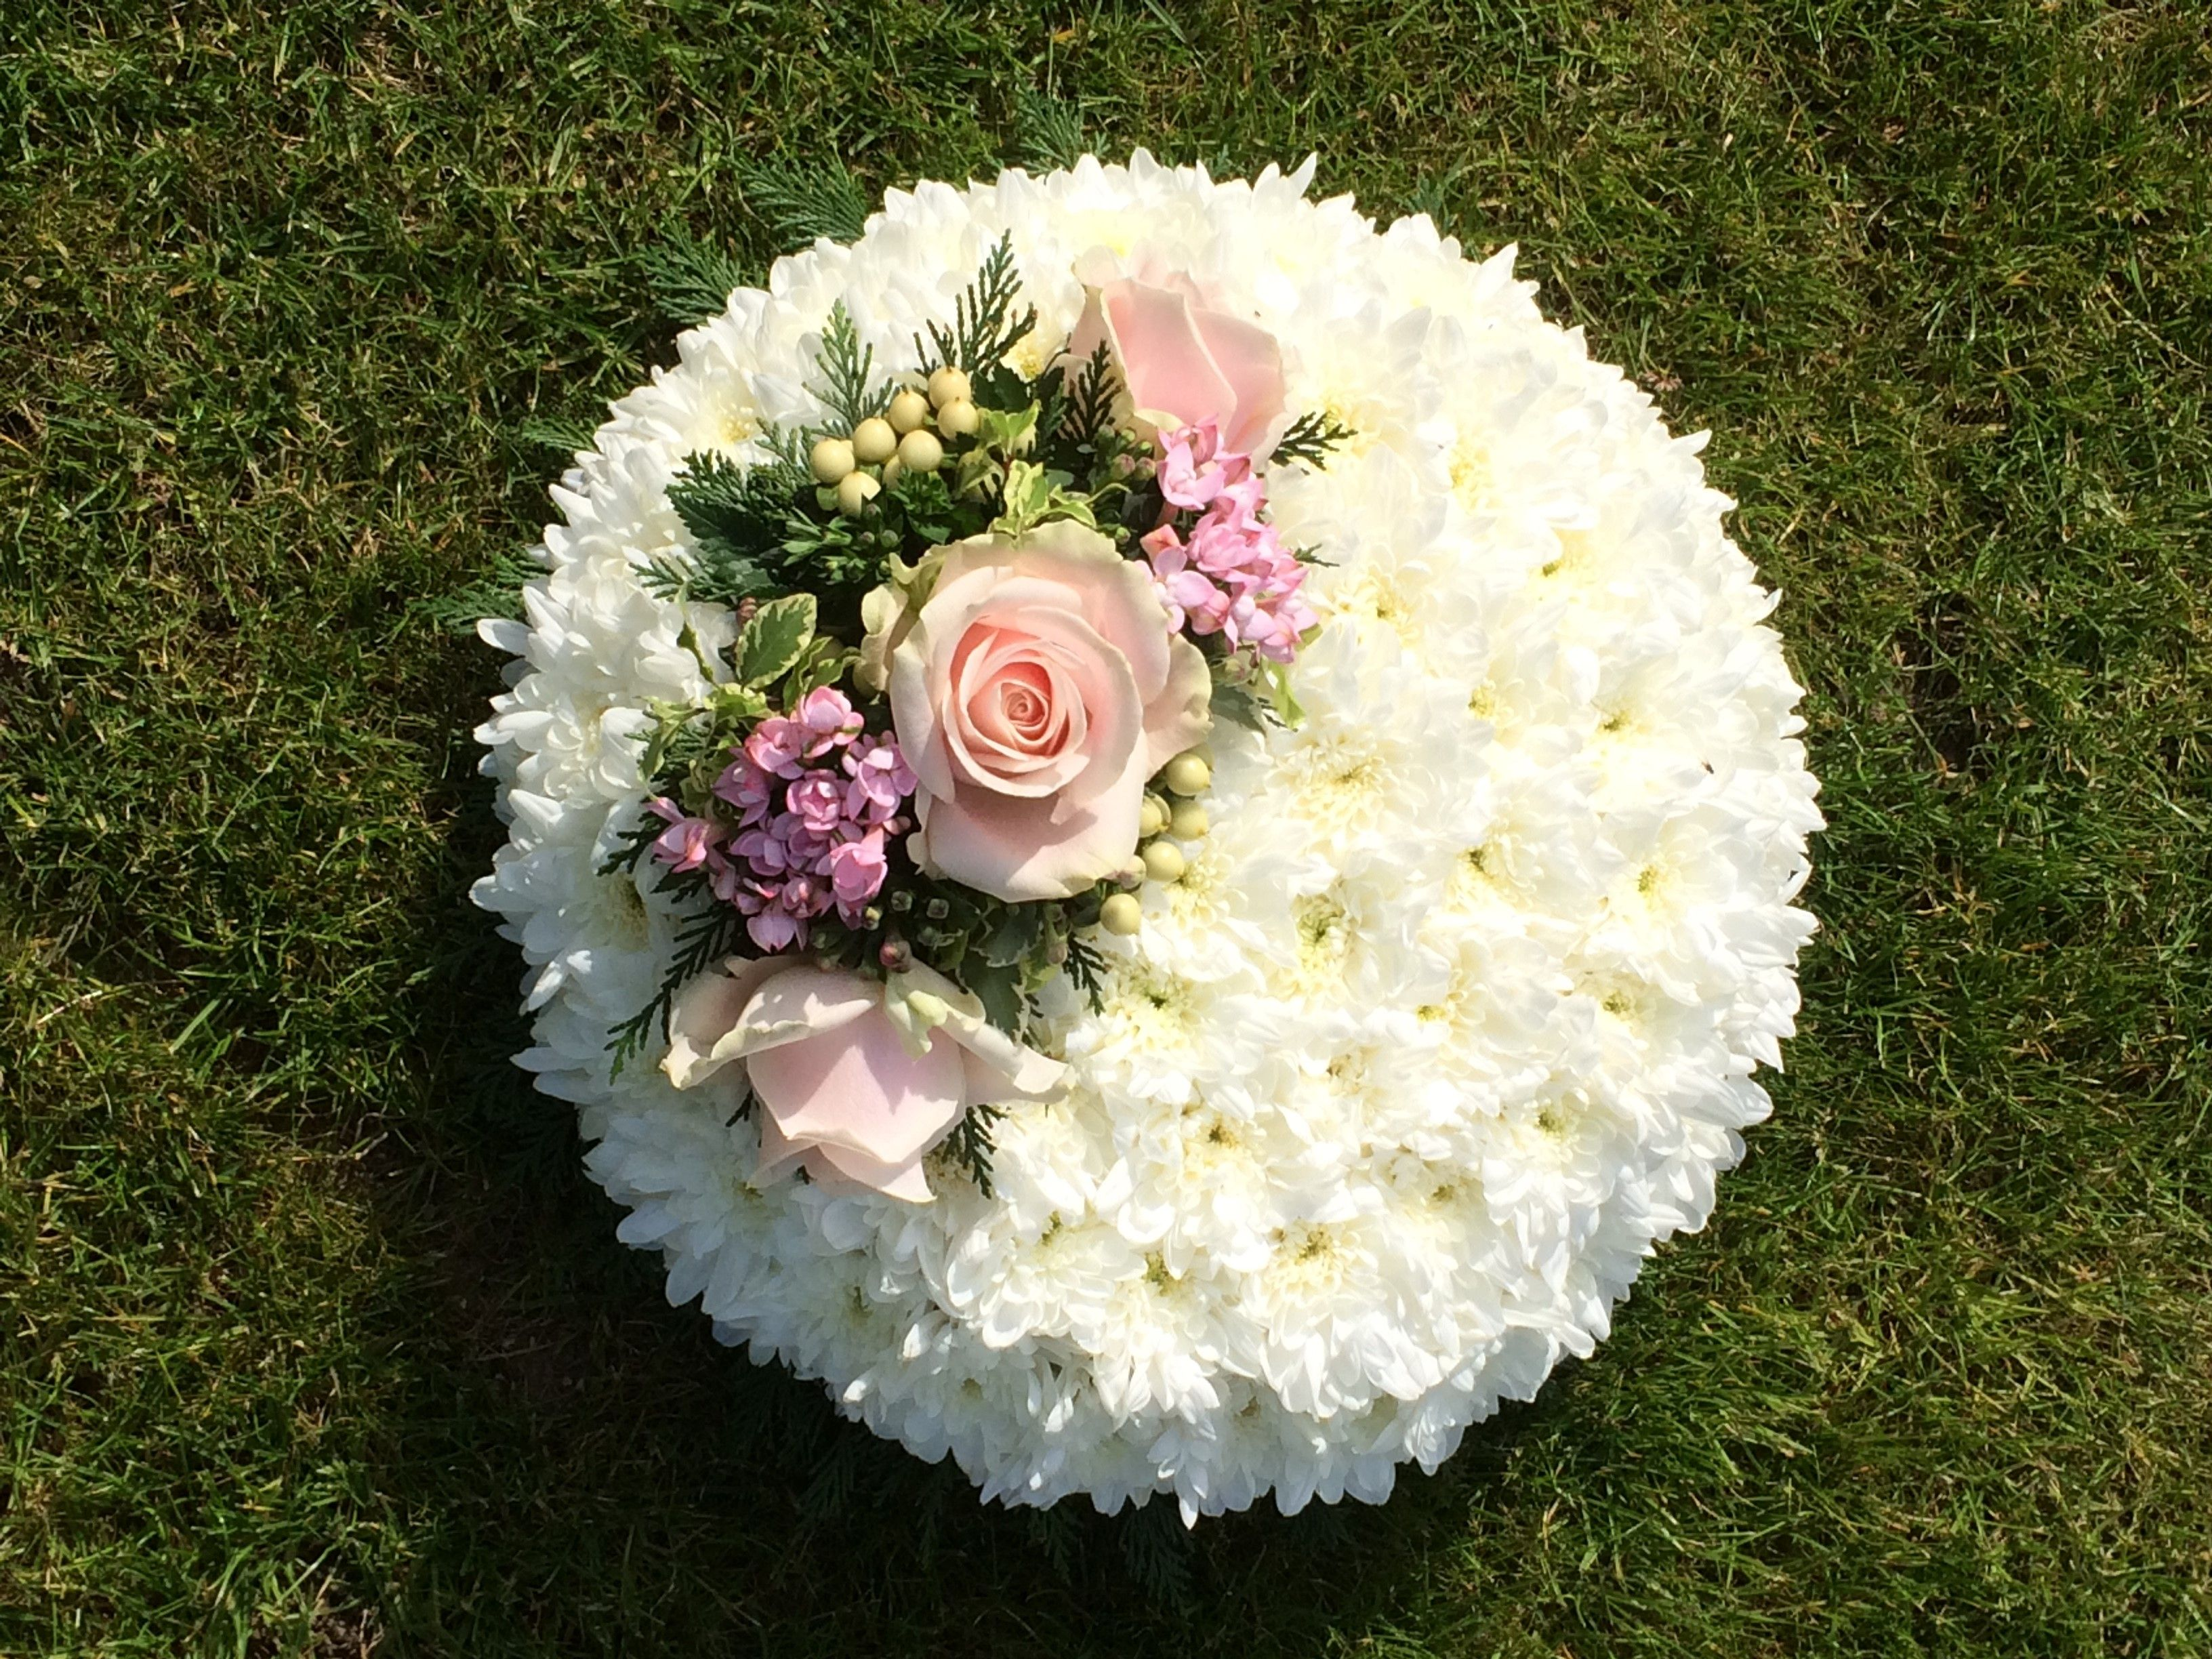 funeral posy pad white chrysanthemum based with floral spray